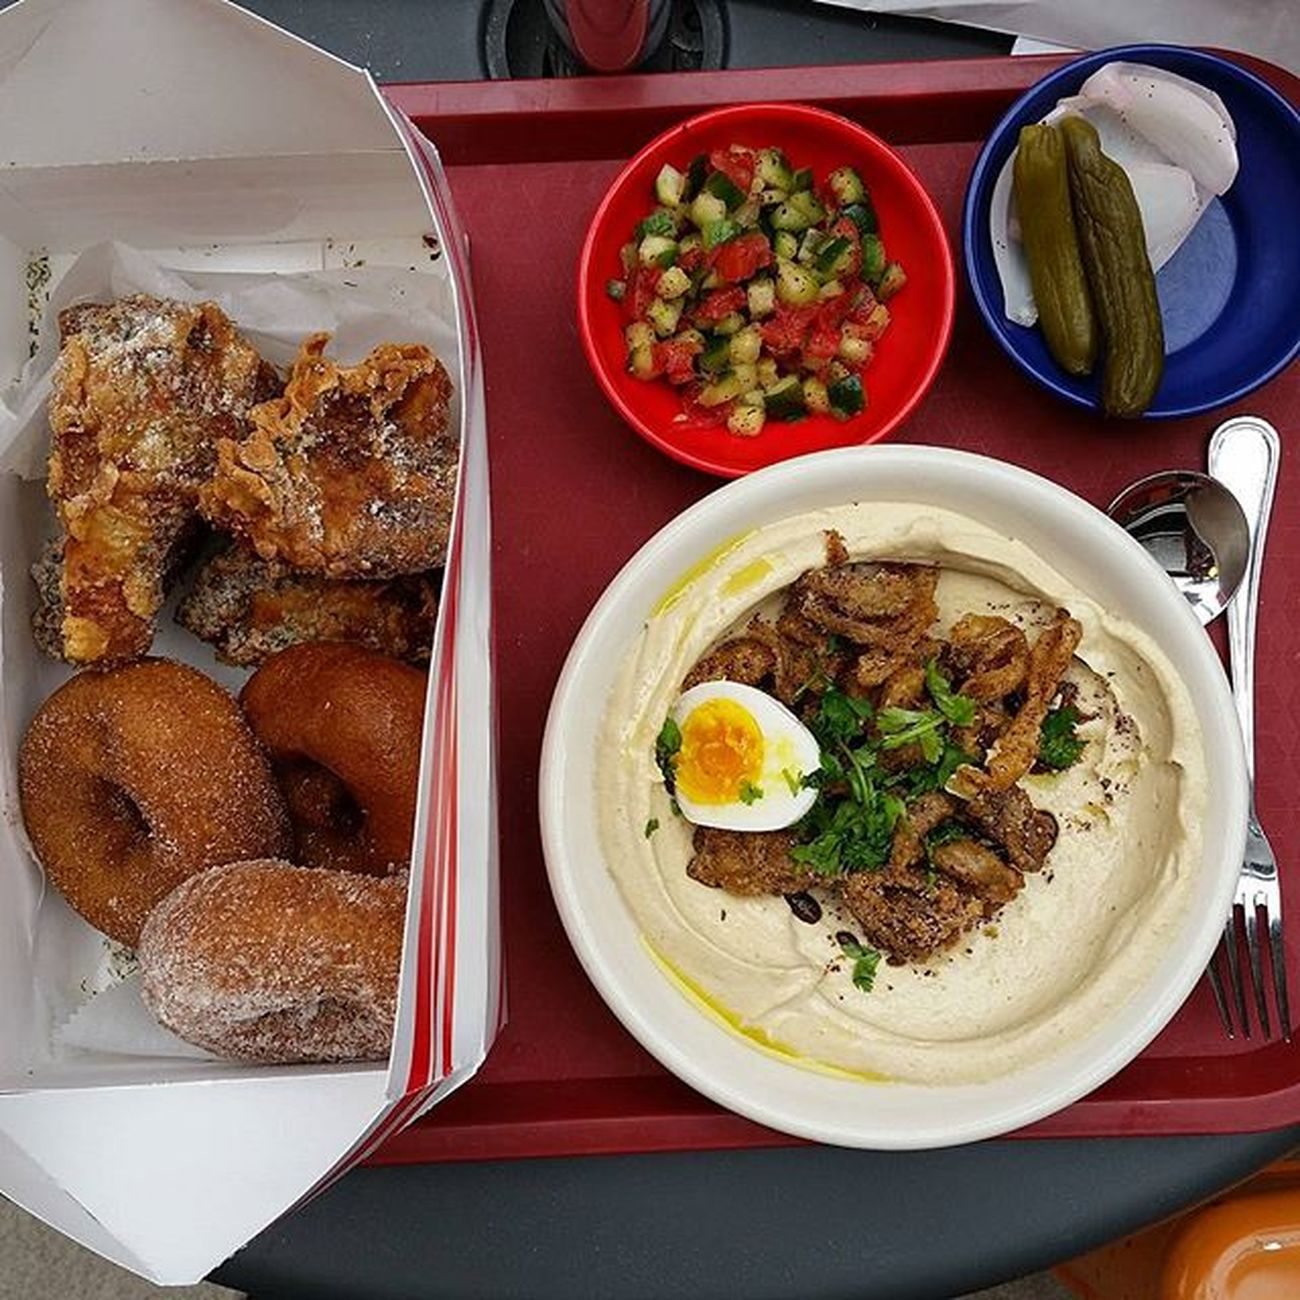 Chicken Skin Hummus with Fried Chicken and Donuts @mikesolomonov @federaldonuts @dizengoff_philly Chickenandhummus Friedchickenonfriedchicken Bestcombo Bestoffday Eeeeeats Foodgasm Phillyeats